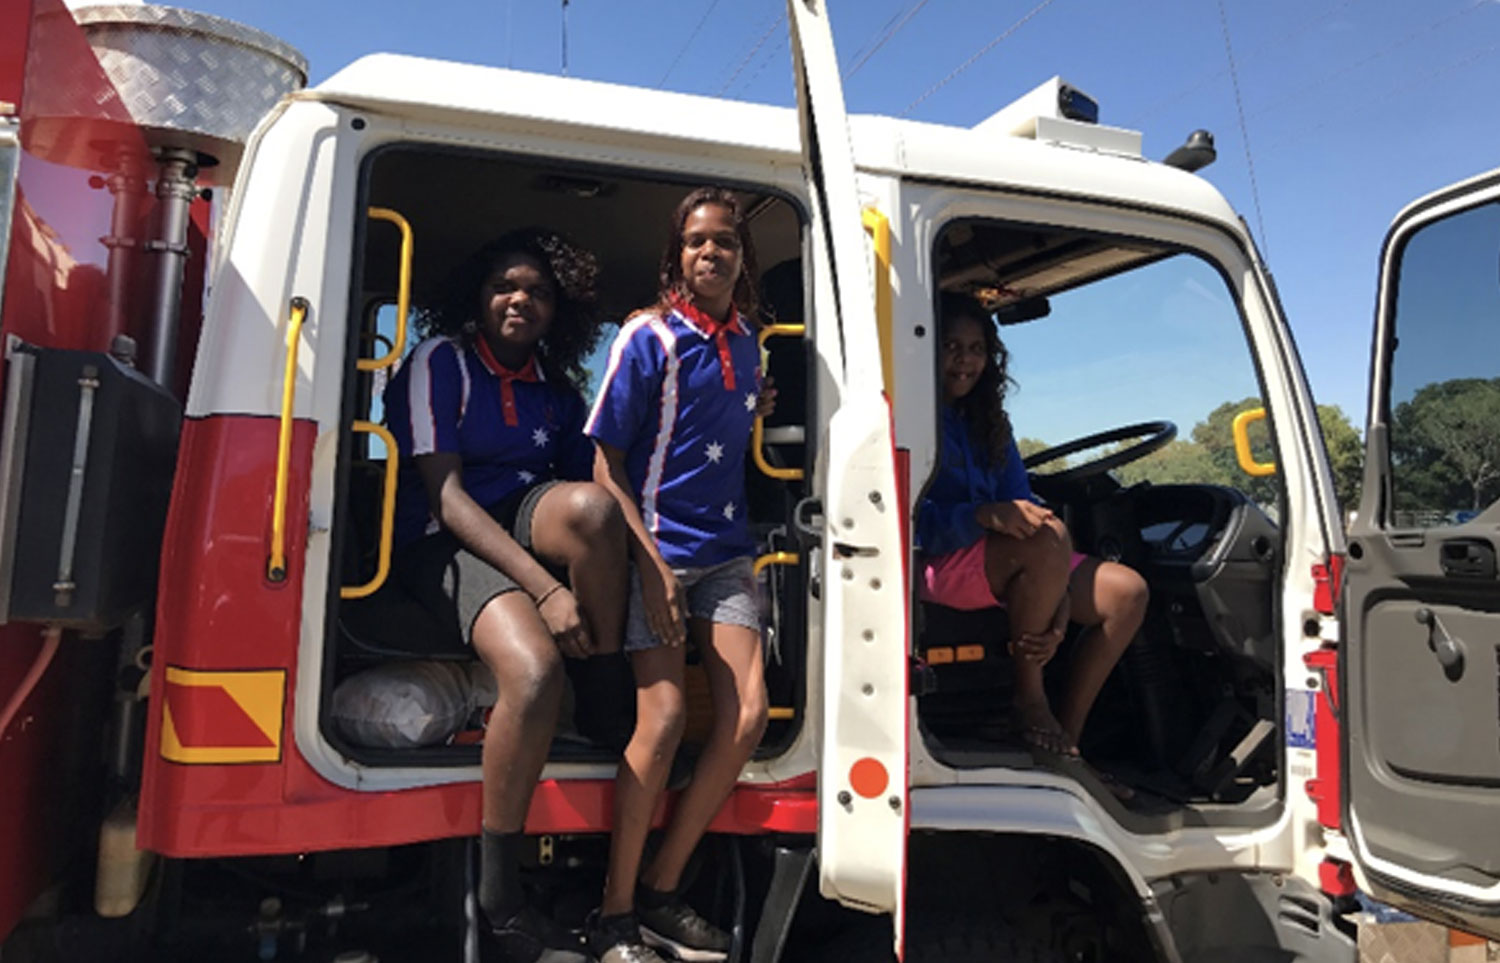 The girls in the fire truck